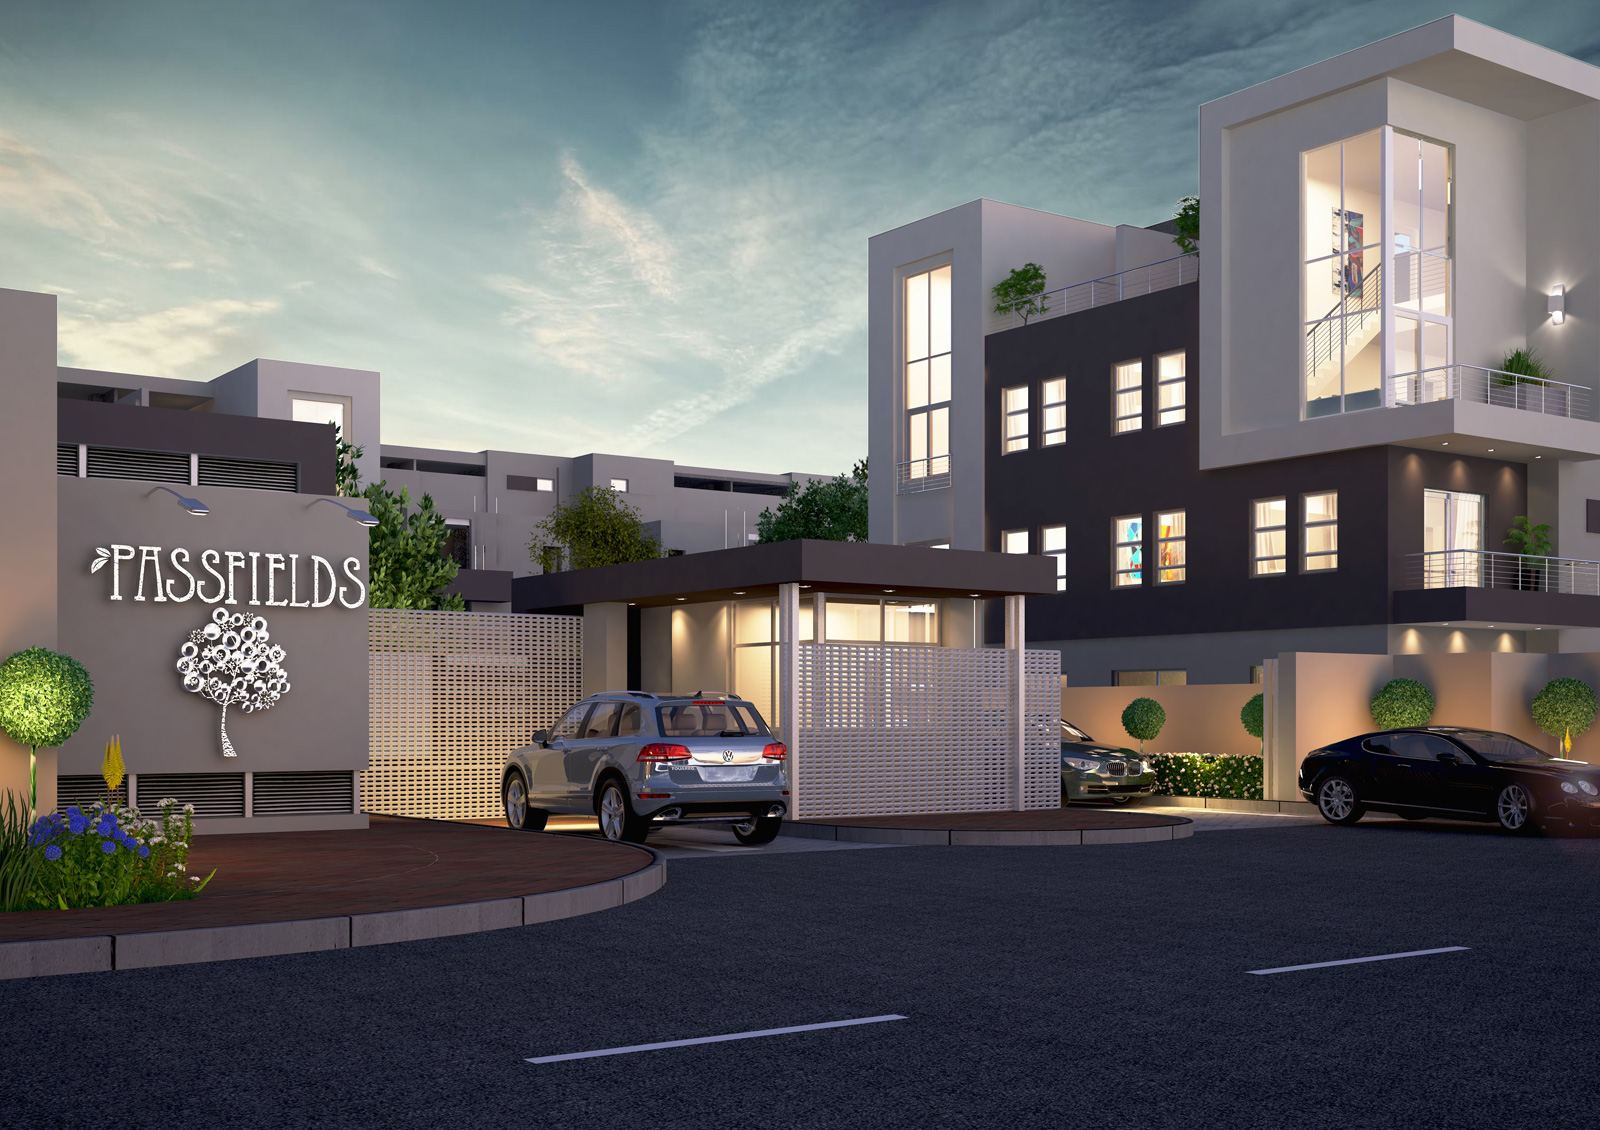 Passfields-Exterior-Parking-View